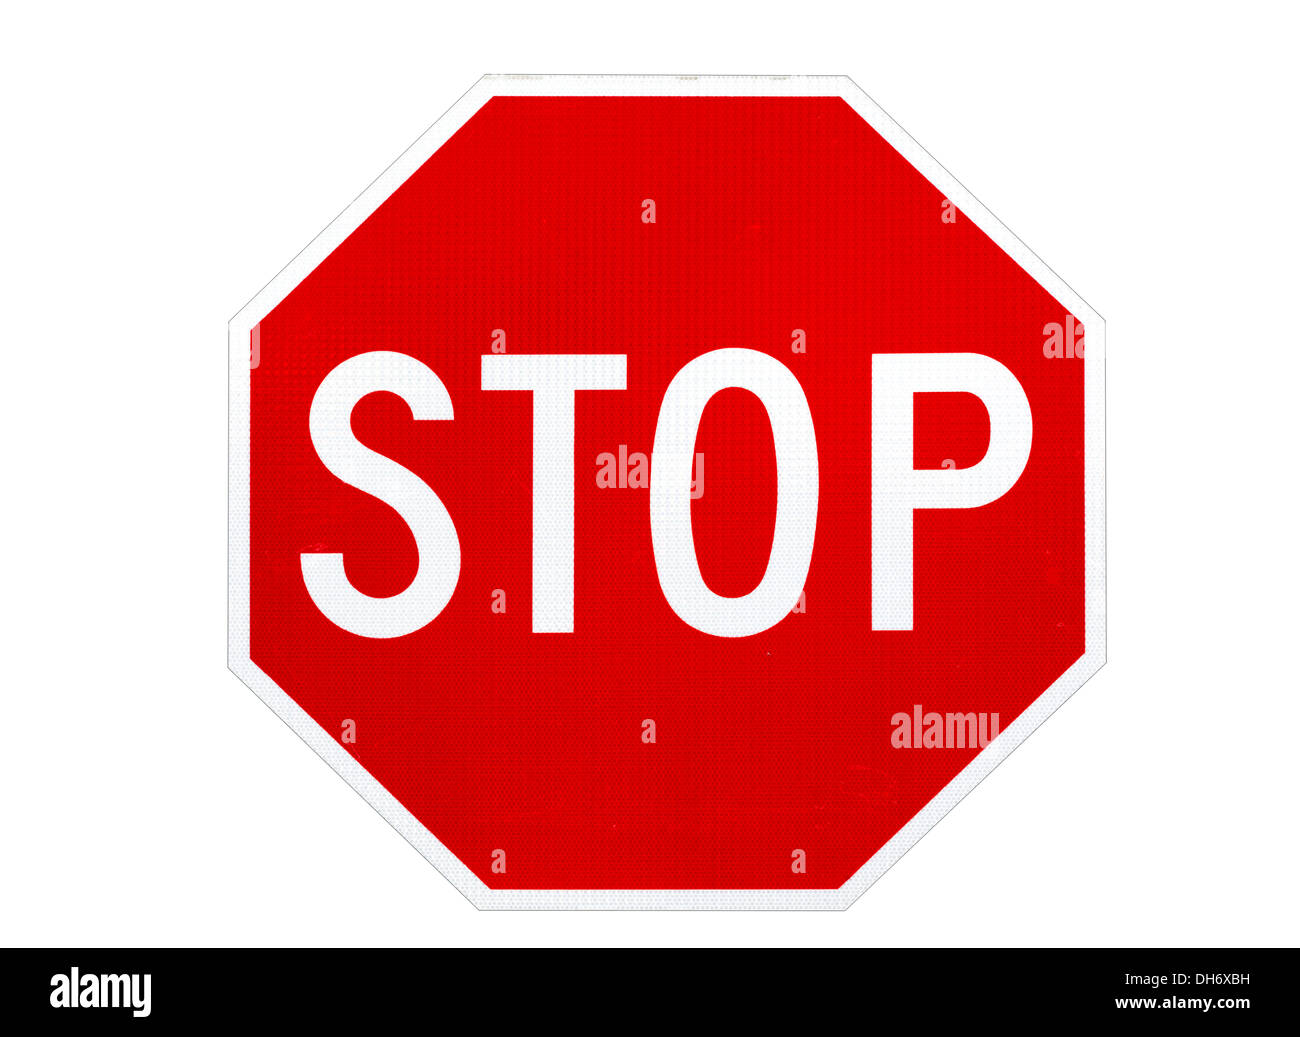 Stop Sign - Stock Image